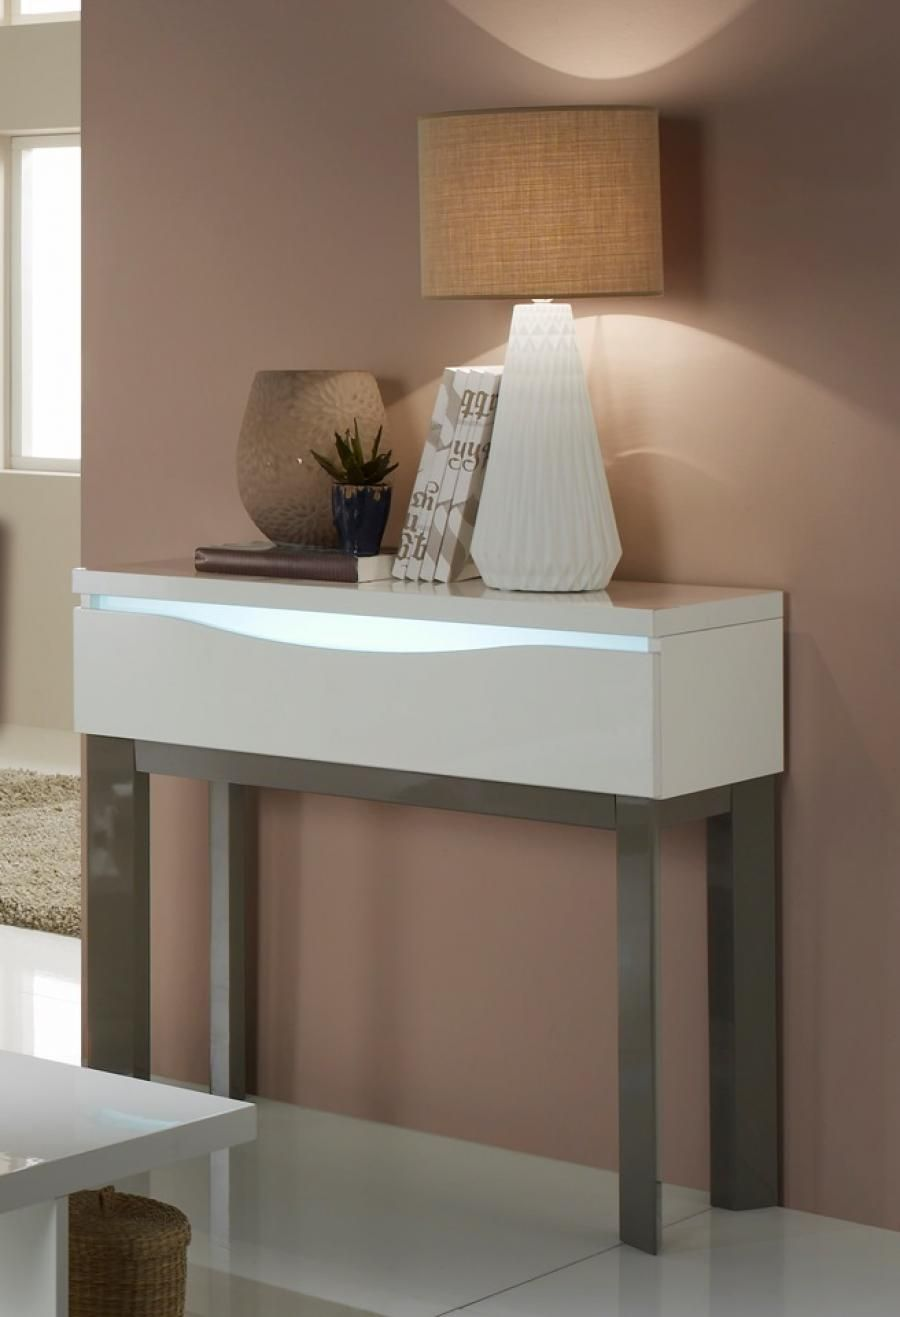 Grey high gloss console table httpargharts pinterest white gloss console table contemporary the sole way to cover that ugly radiator up the beckoning entrance the extra storage in the corridor geotapseo Images